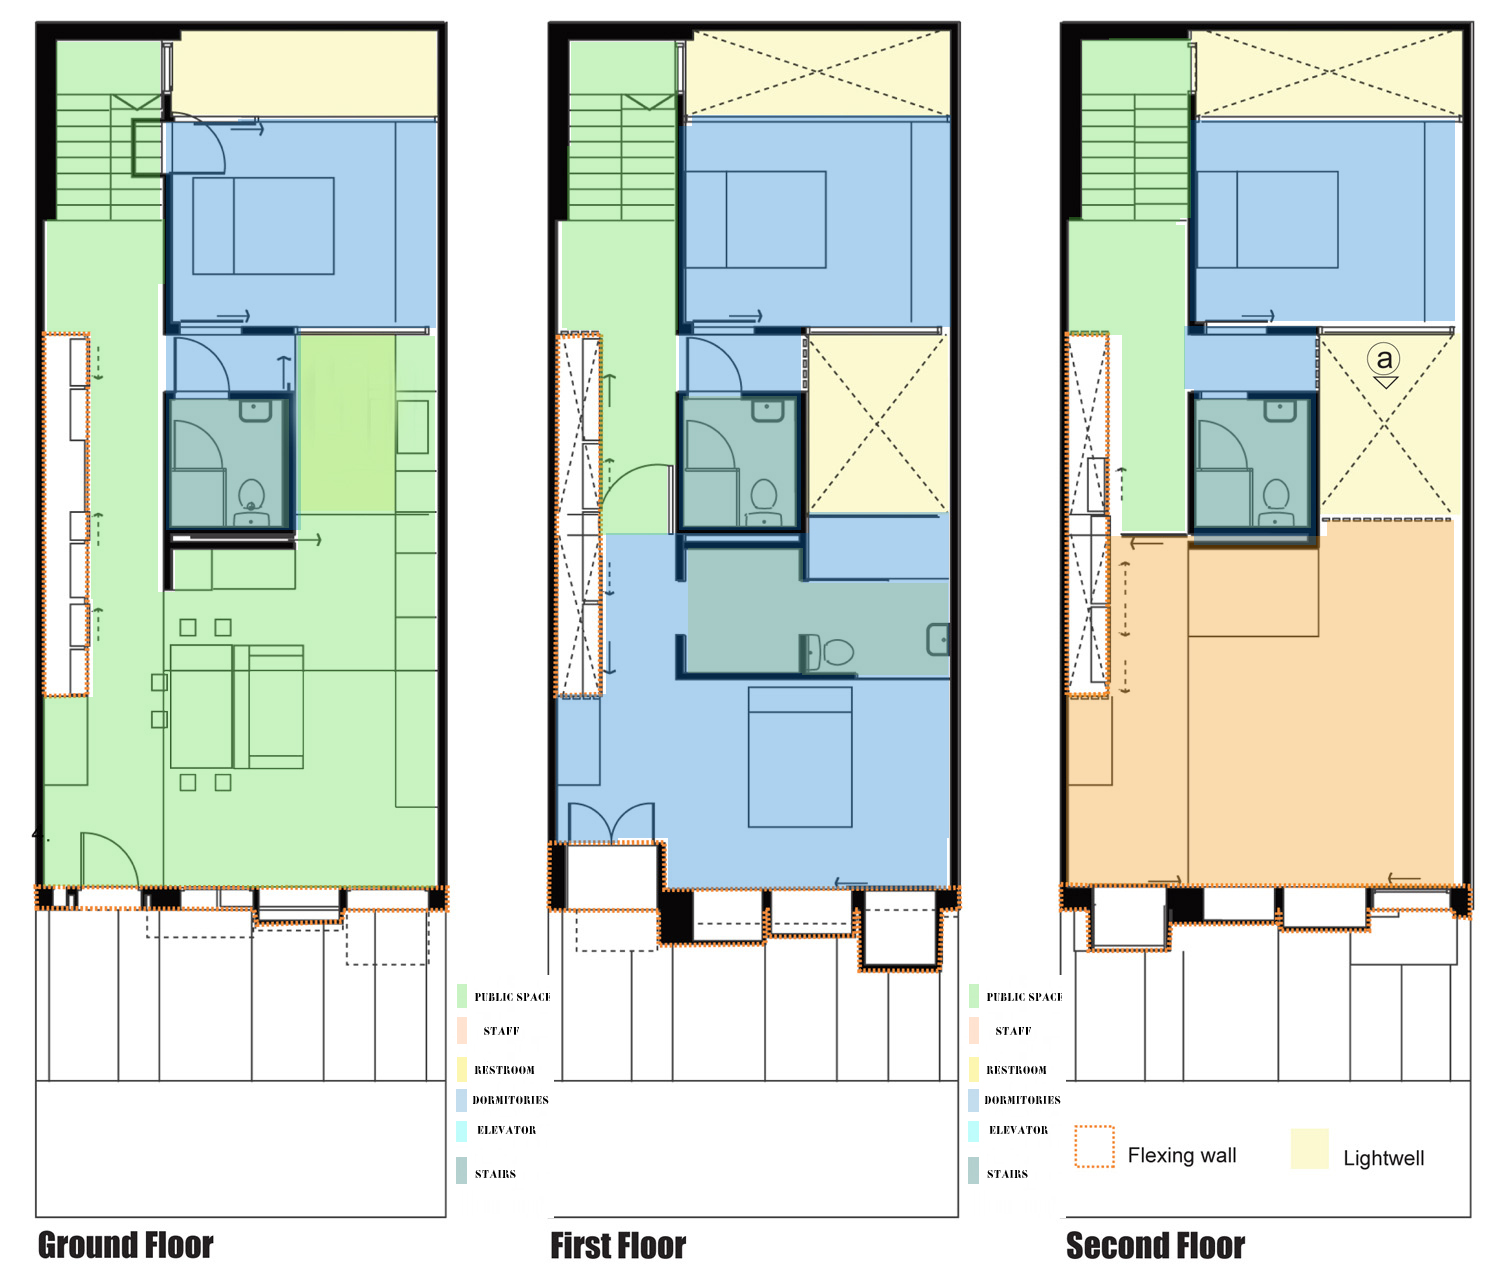 Fernando Méndez: STUDY OF SPACES+ FLOOR PLANS COLOR CODED